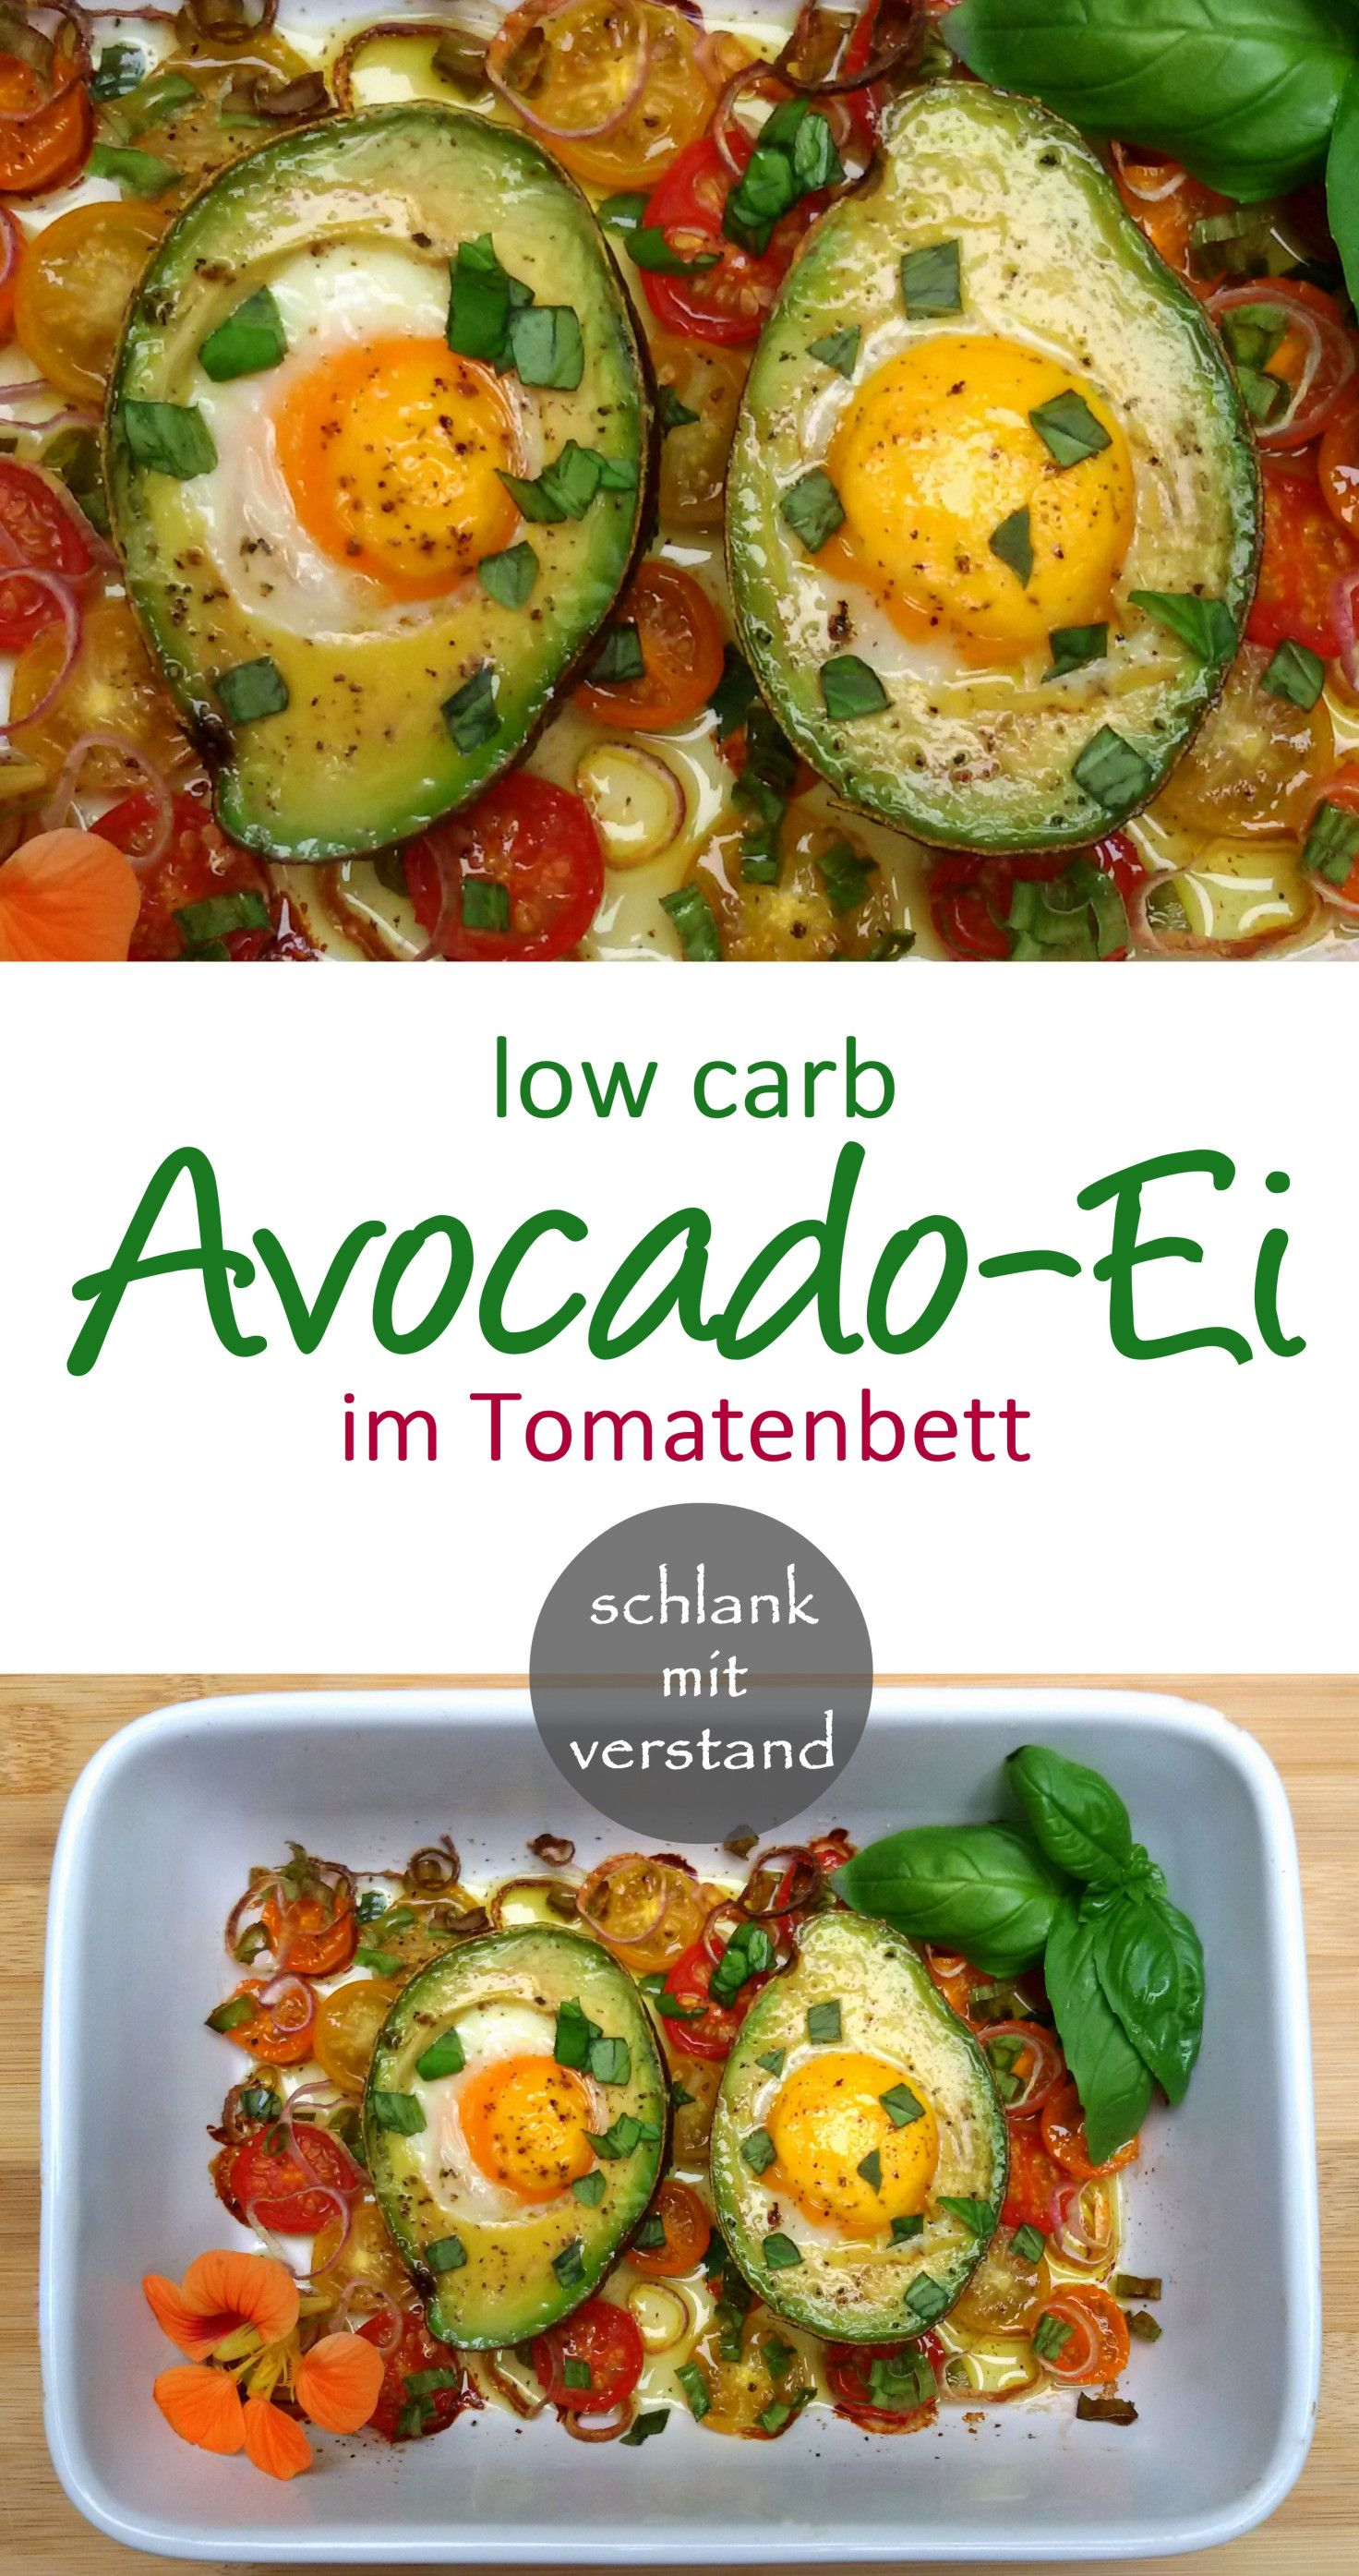 Photo of Avocado egg in tomato bed low carb